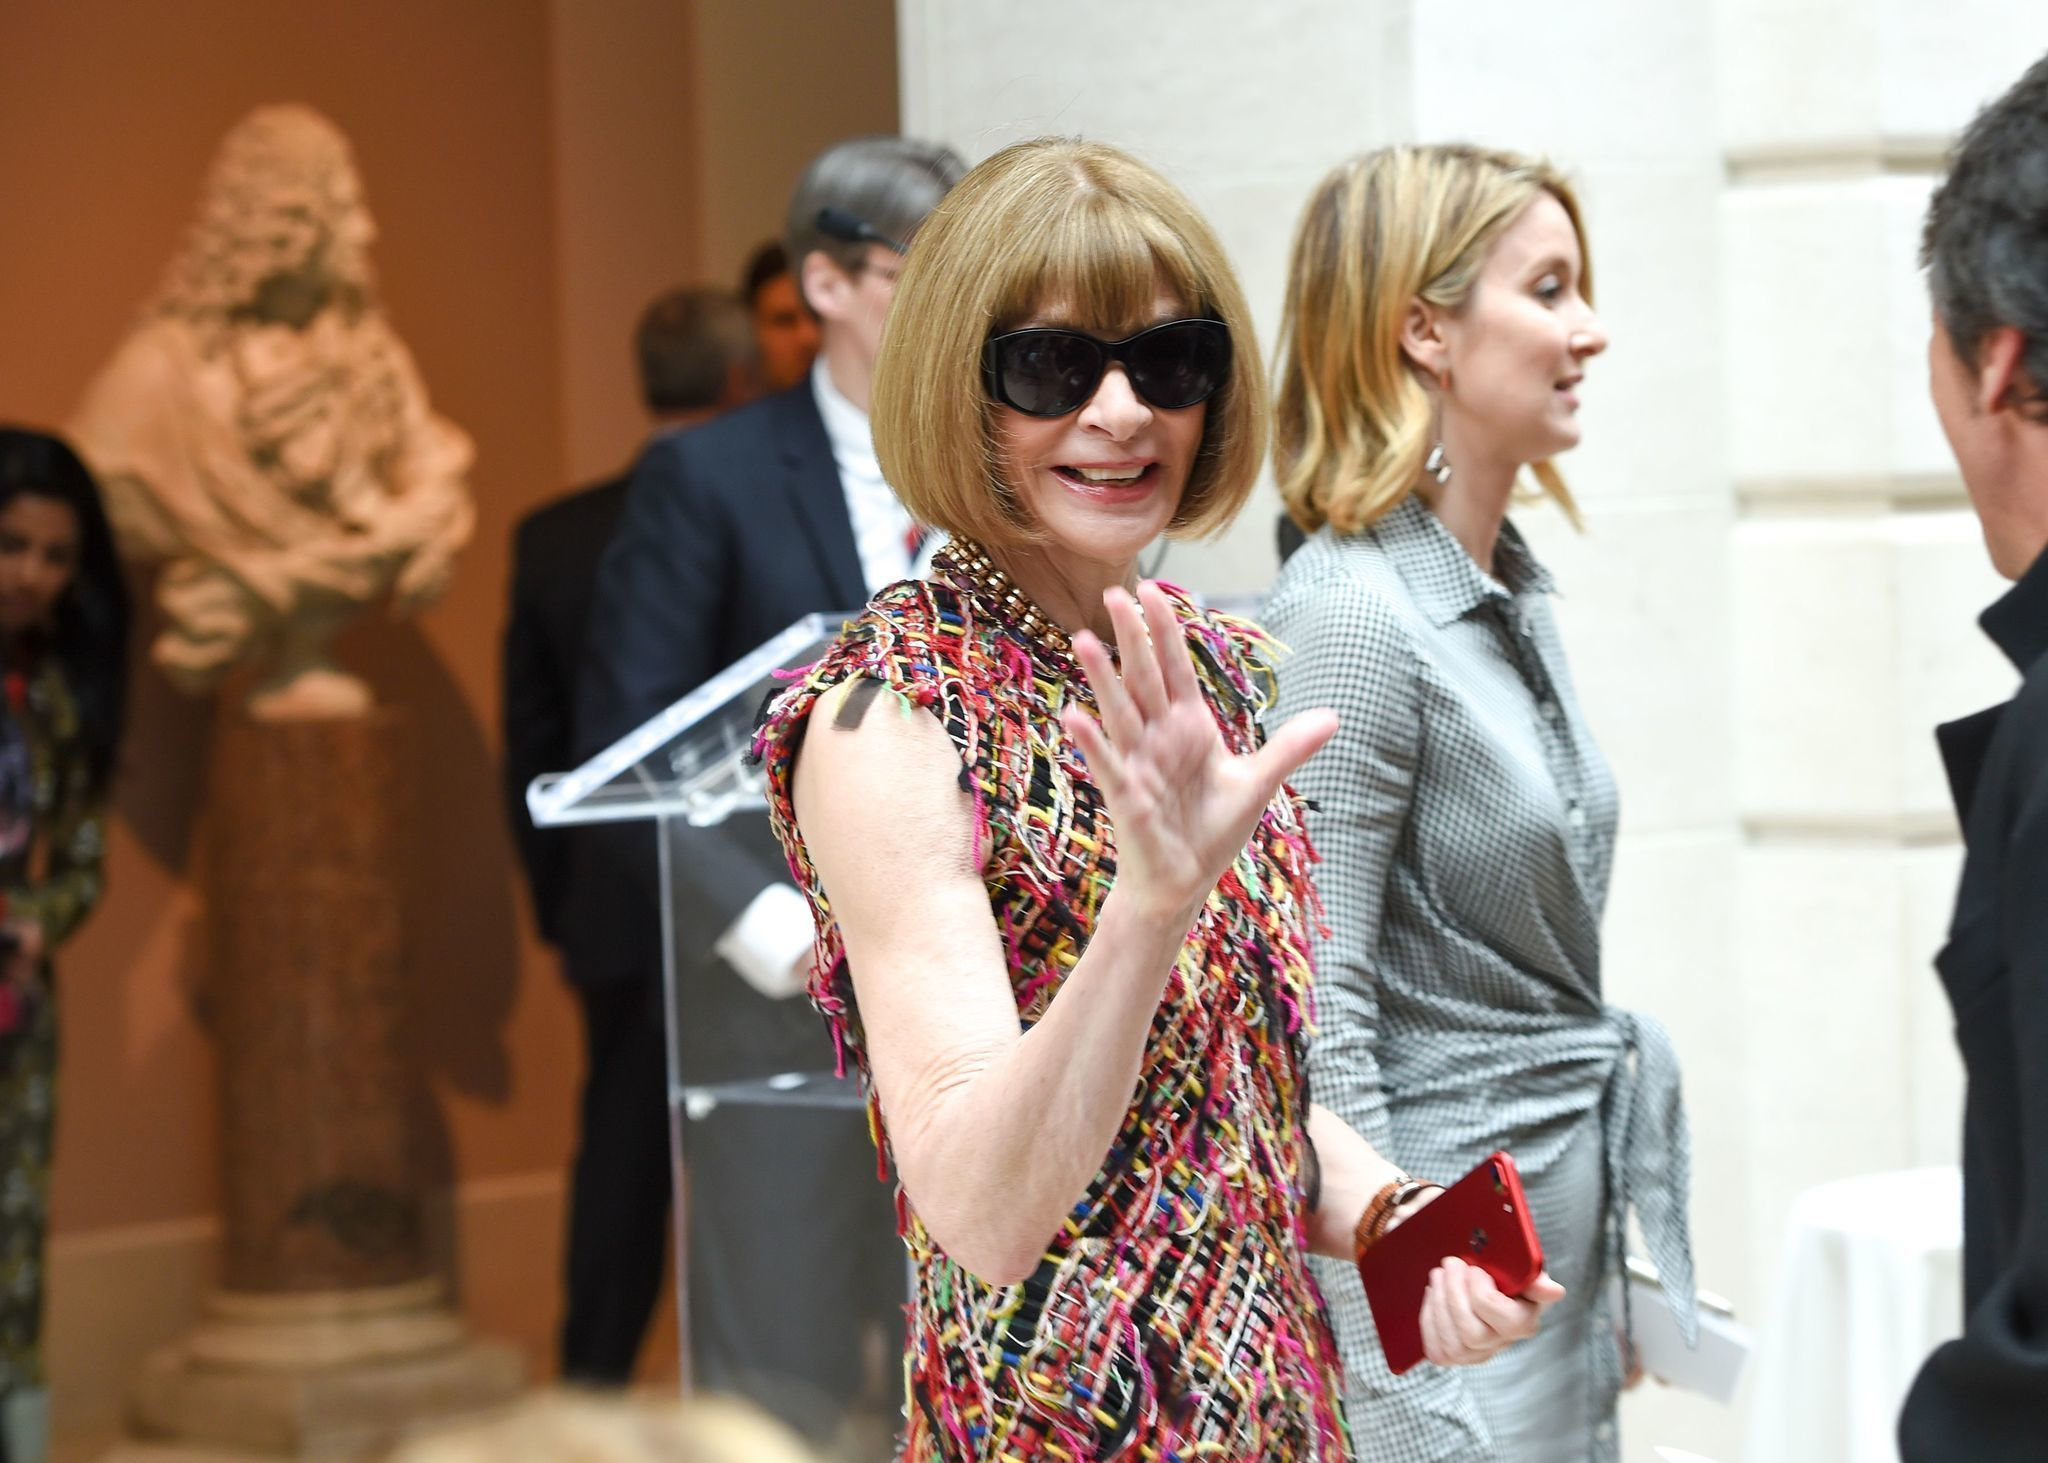 A New TV Feud: Anna Wintour And Tina Brown Rivalry To Be